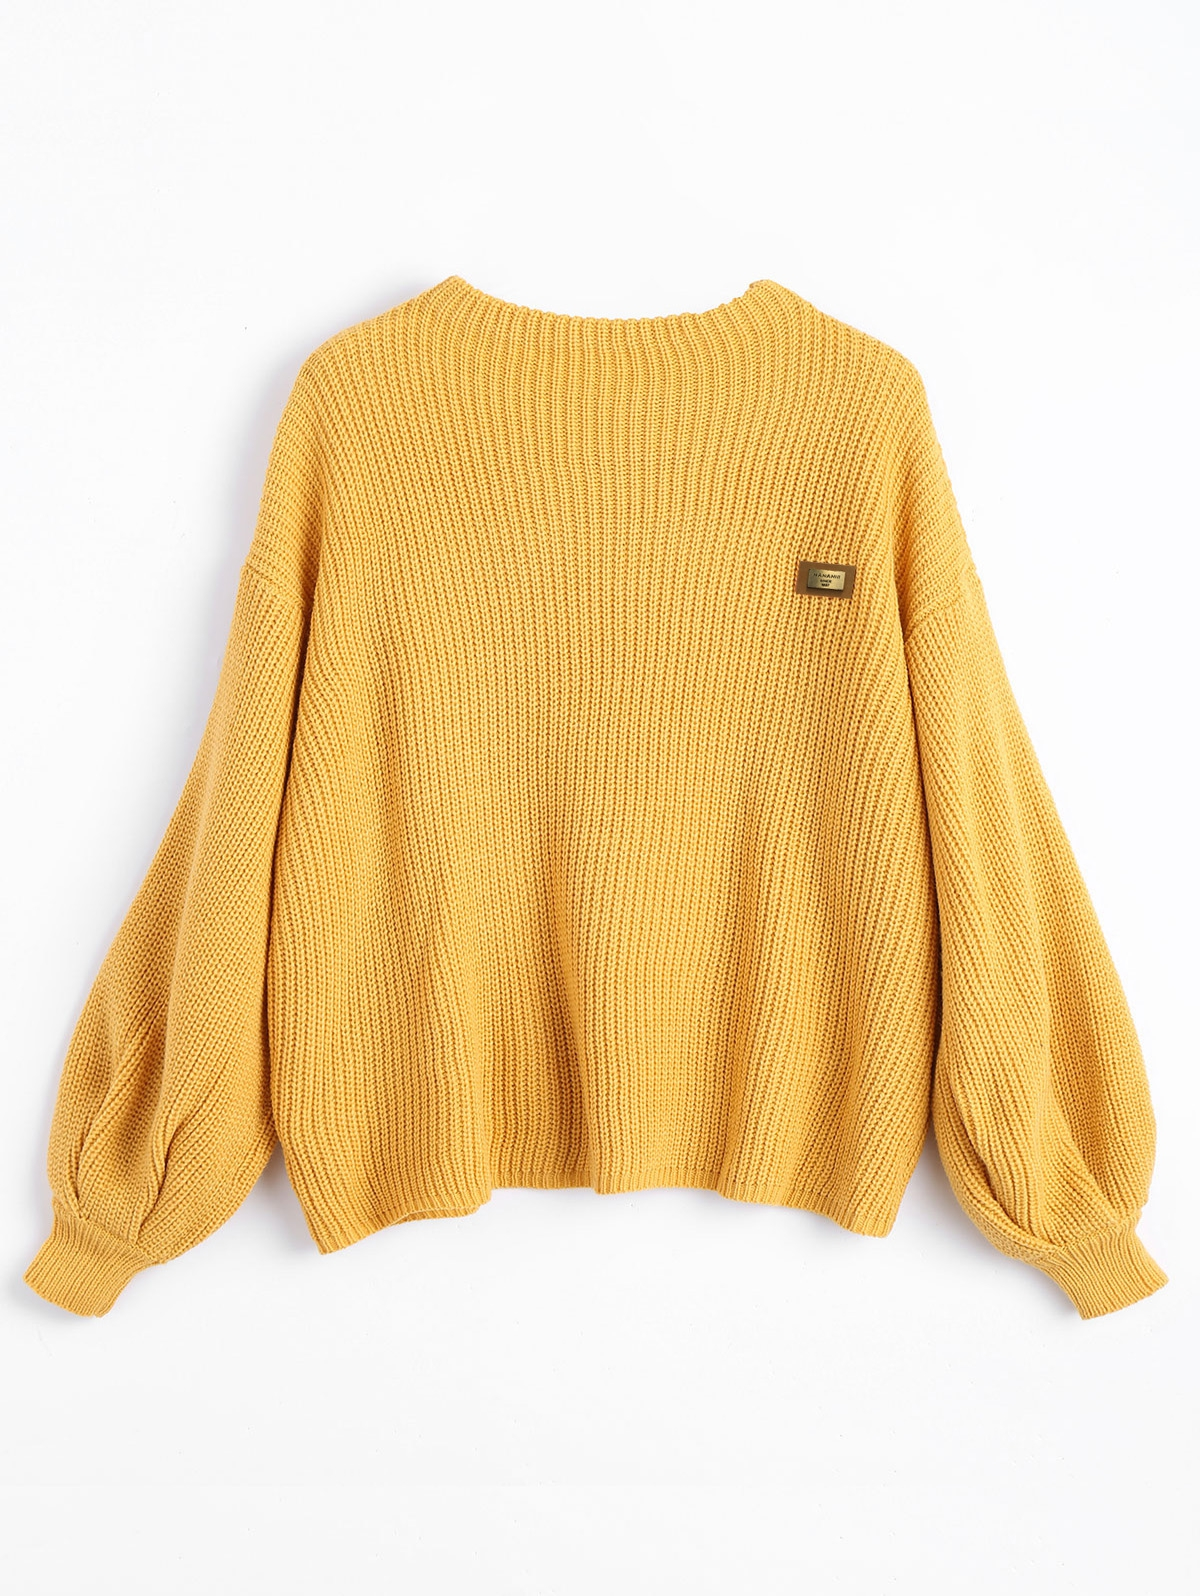 ZAFUL Oversized Badge Patched Pullover Sweater